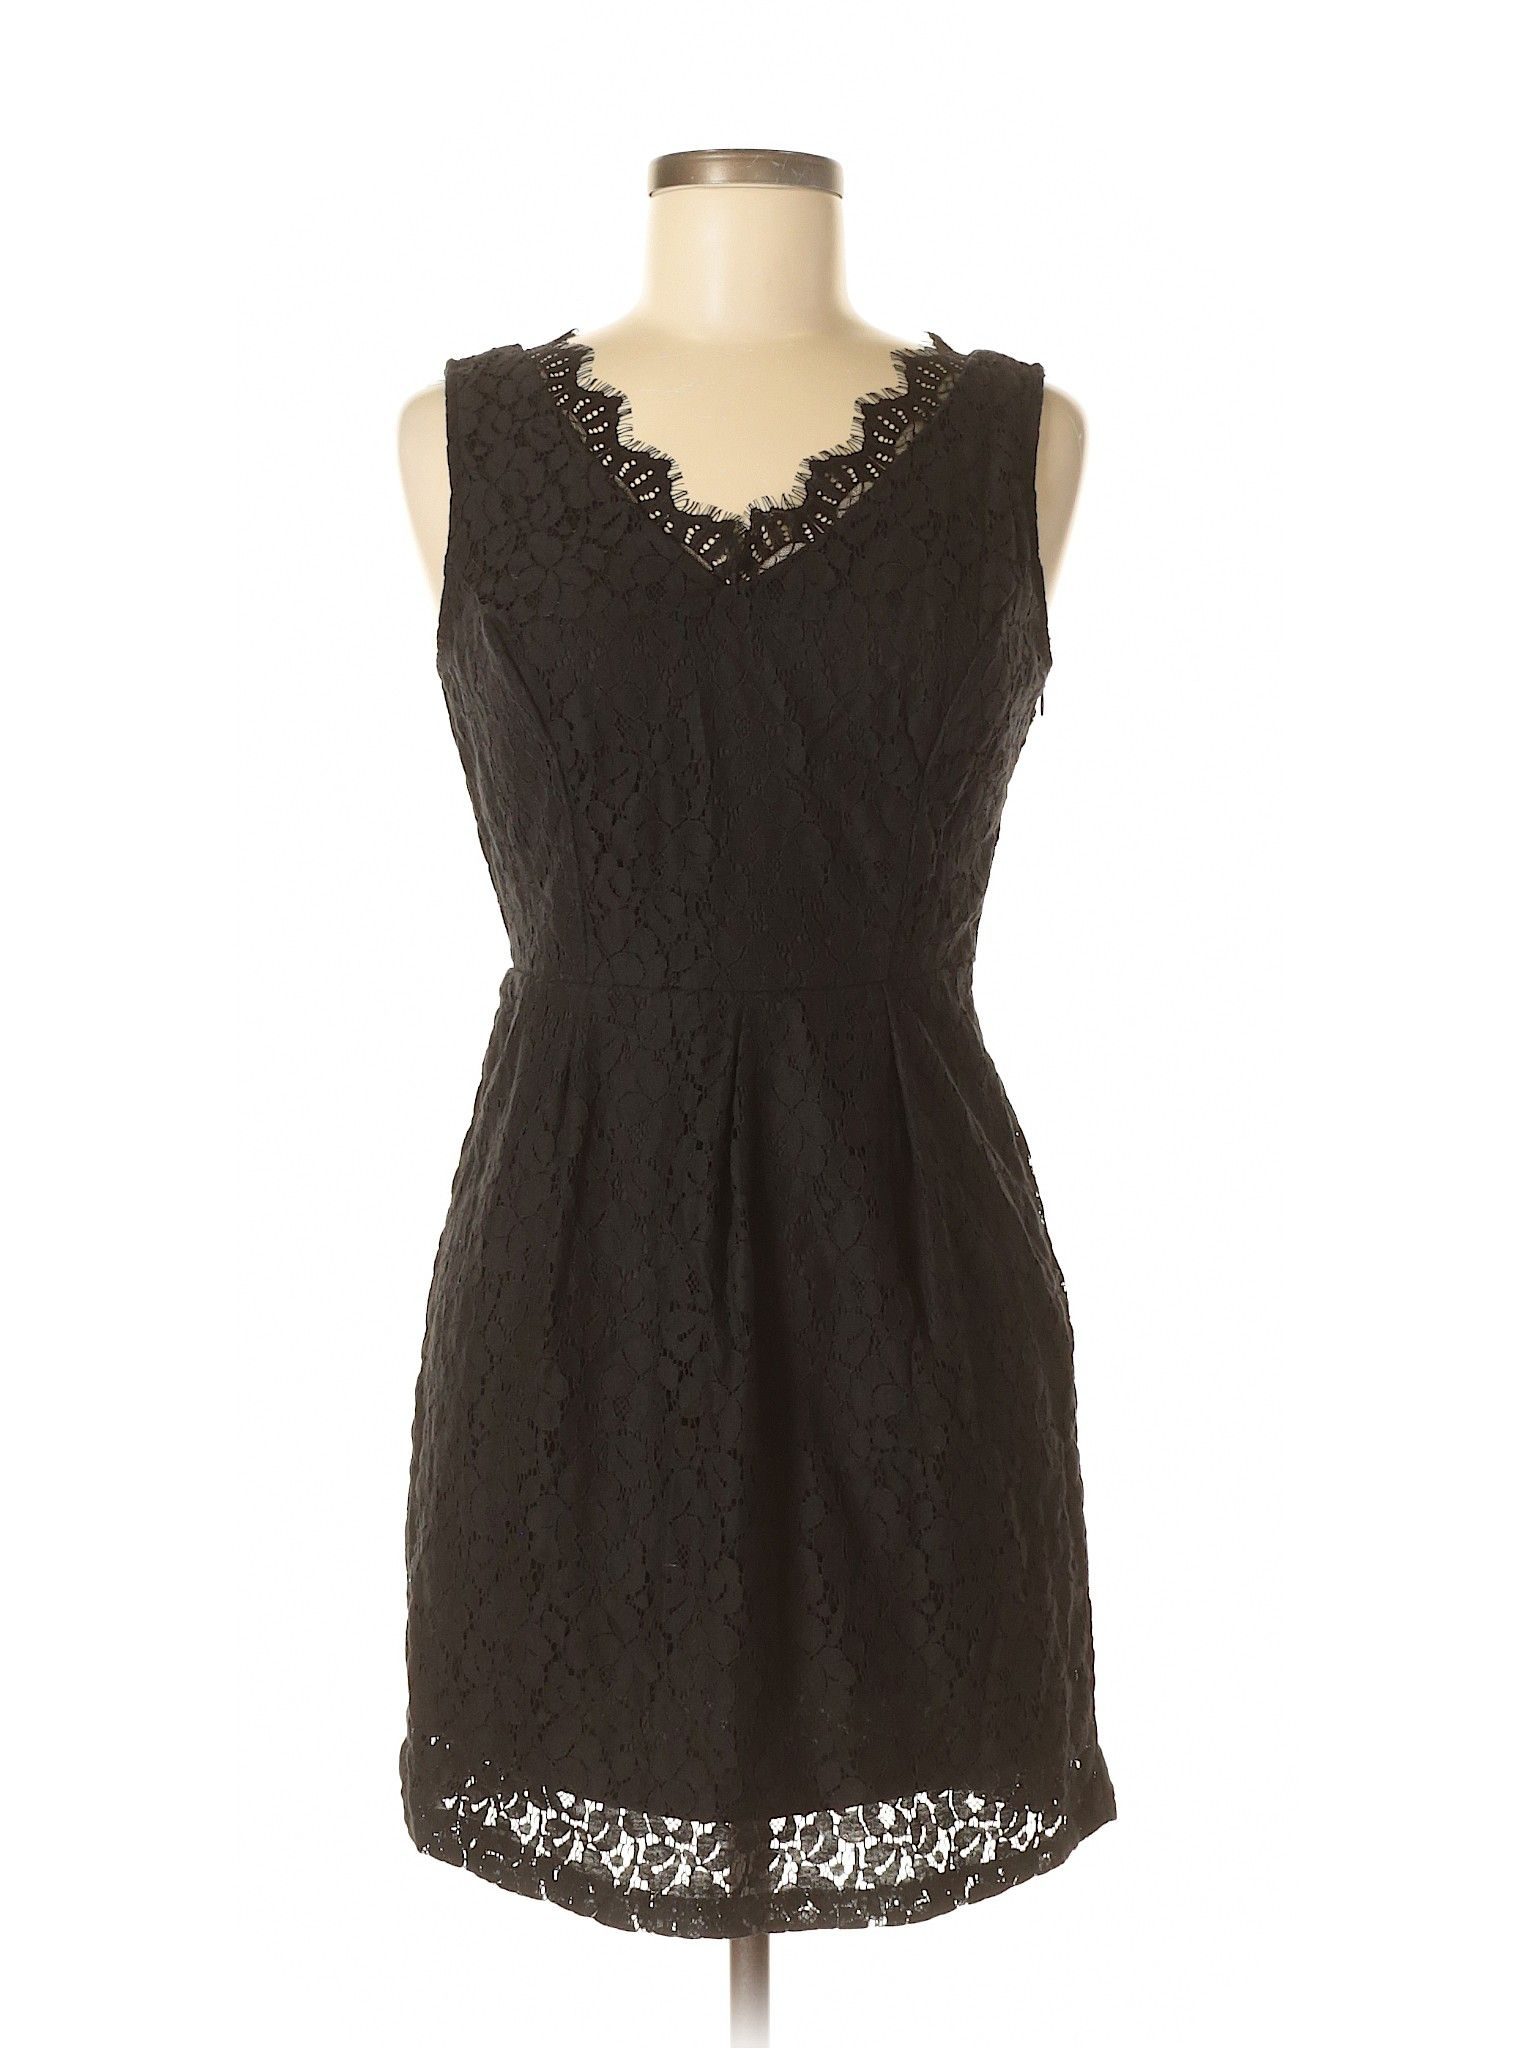 Hearts Casual Dress A Line Black Lace Dresses Used Size Medium Dresses Little Black Dress